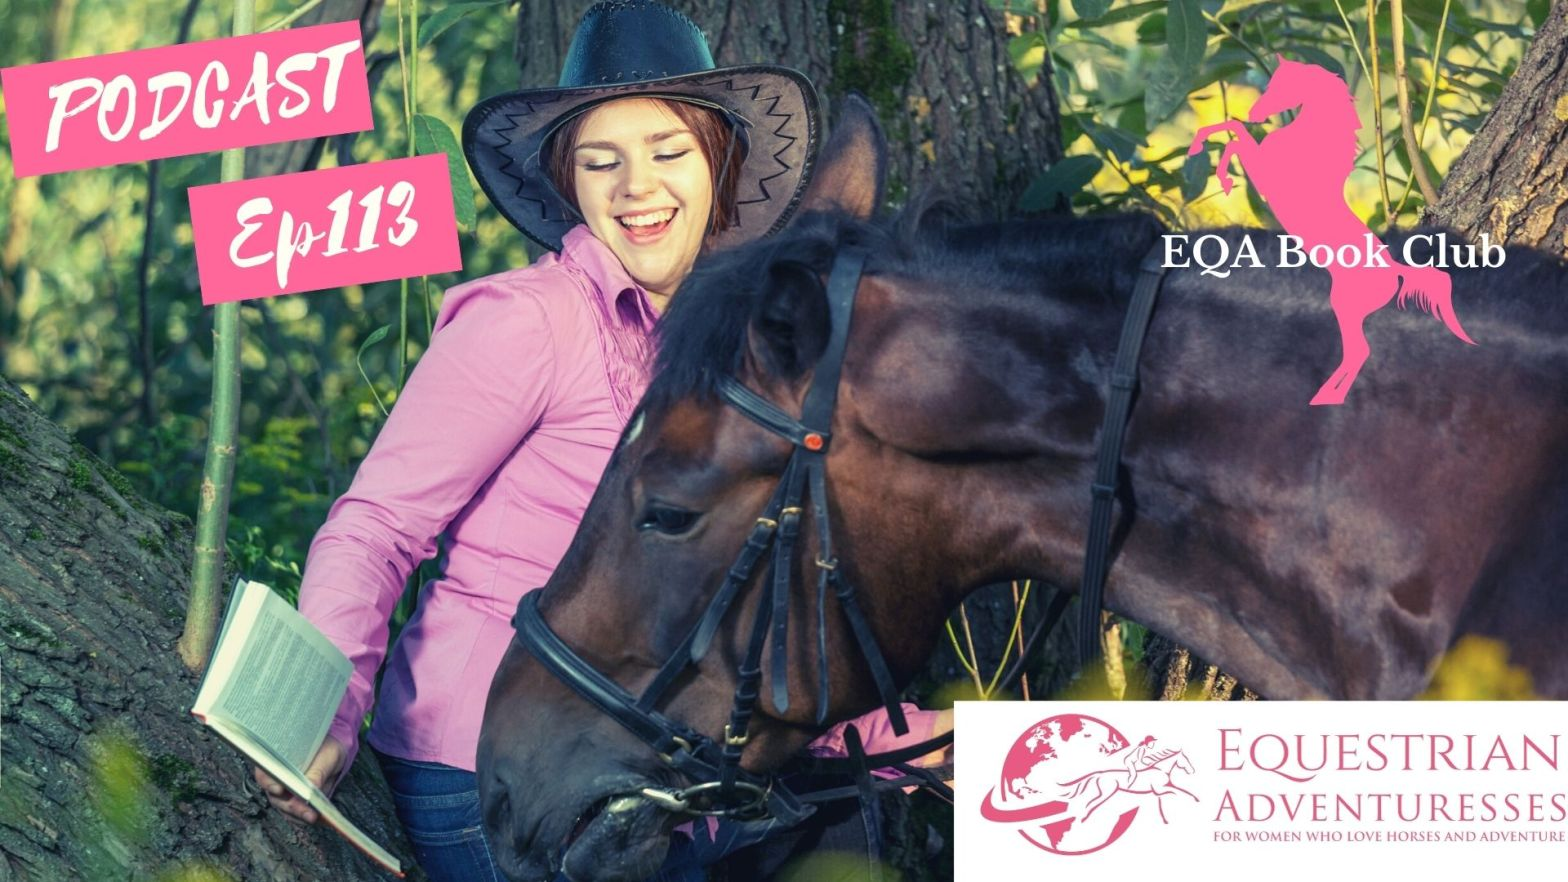 Equestrian Adventuresses Travel and Horse Podcast Ep 113 - EQA Book Club